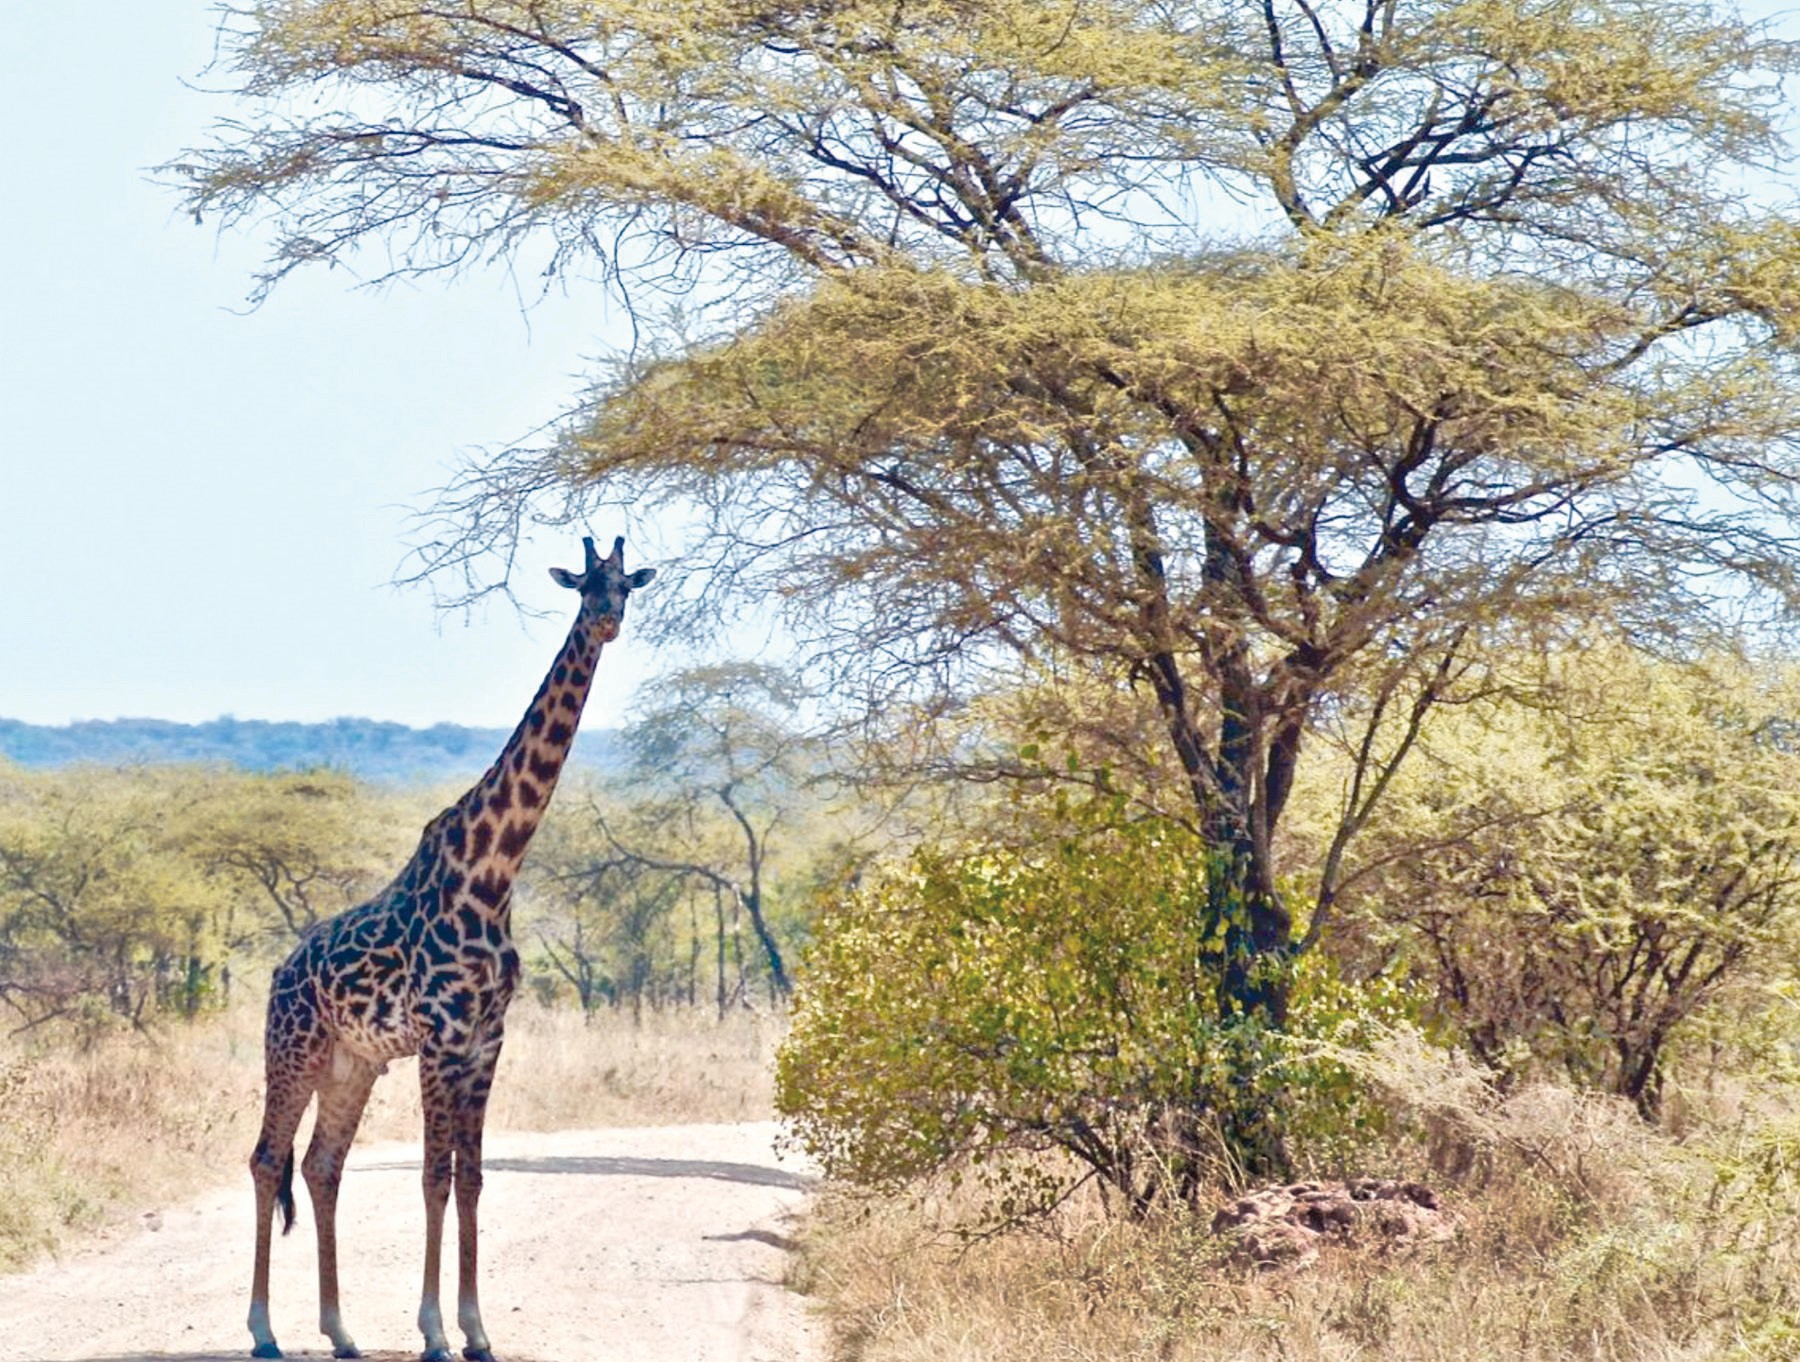 HEIGHTENED ALERT—This is the giraffe that attacked the Menteer couple during a trip to Africa in 2015. Courtesy of David Menteer